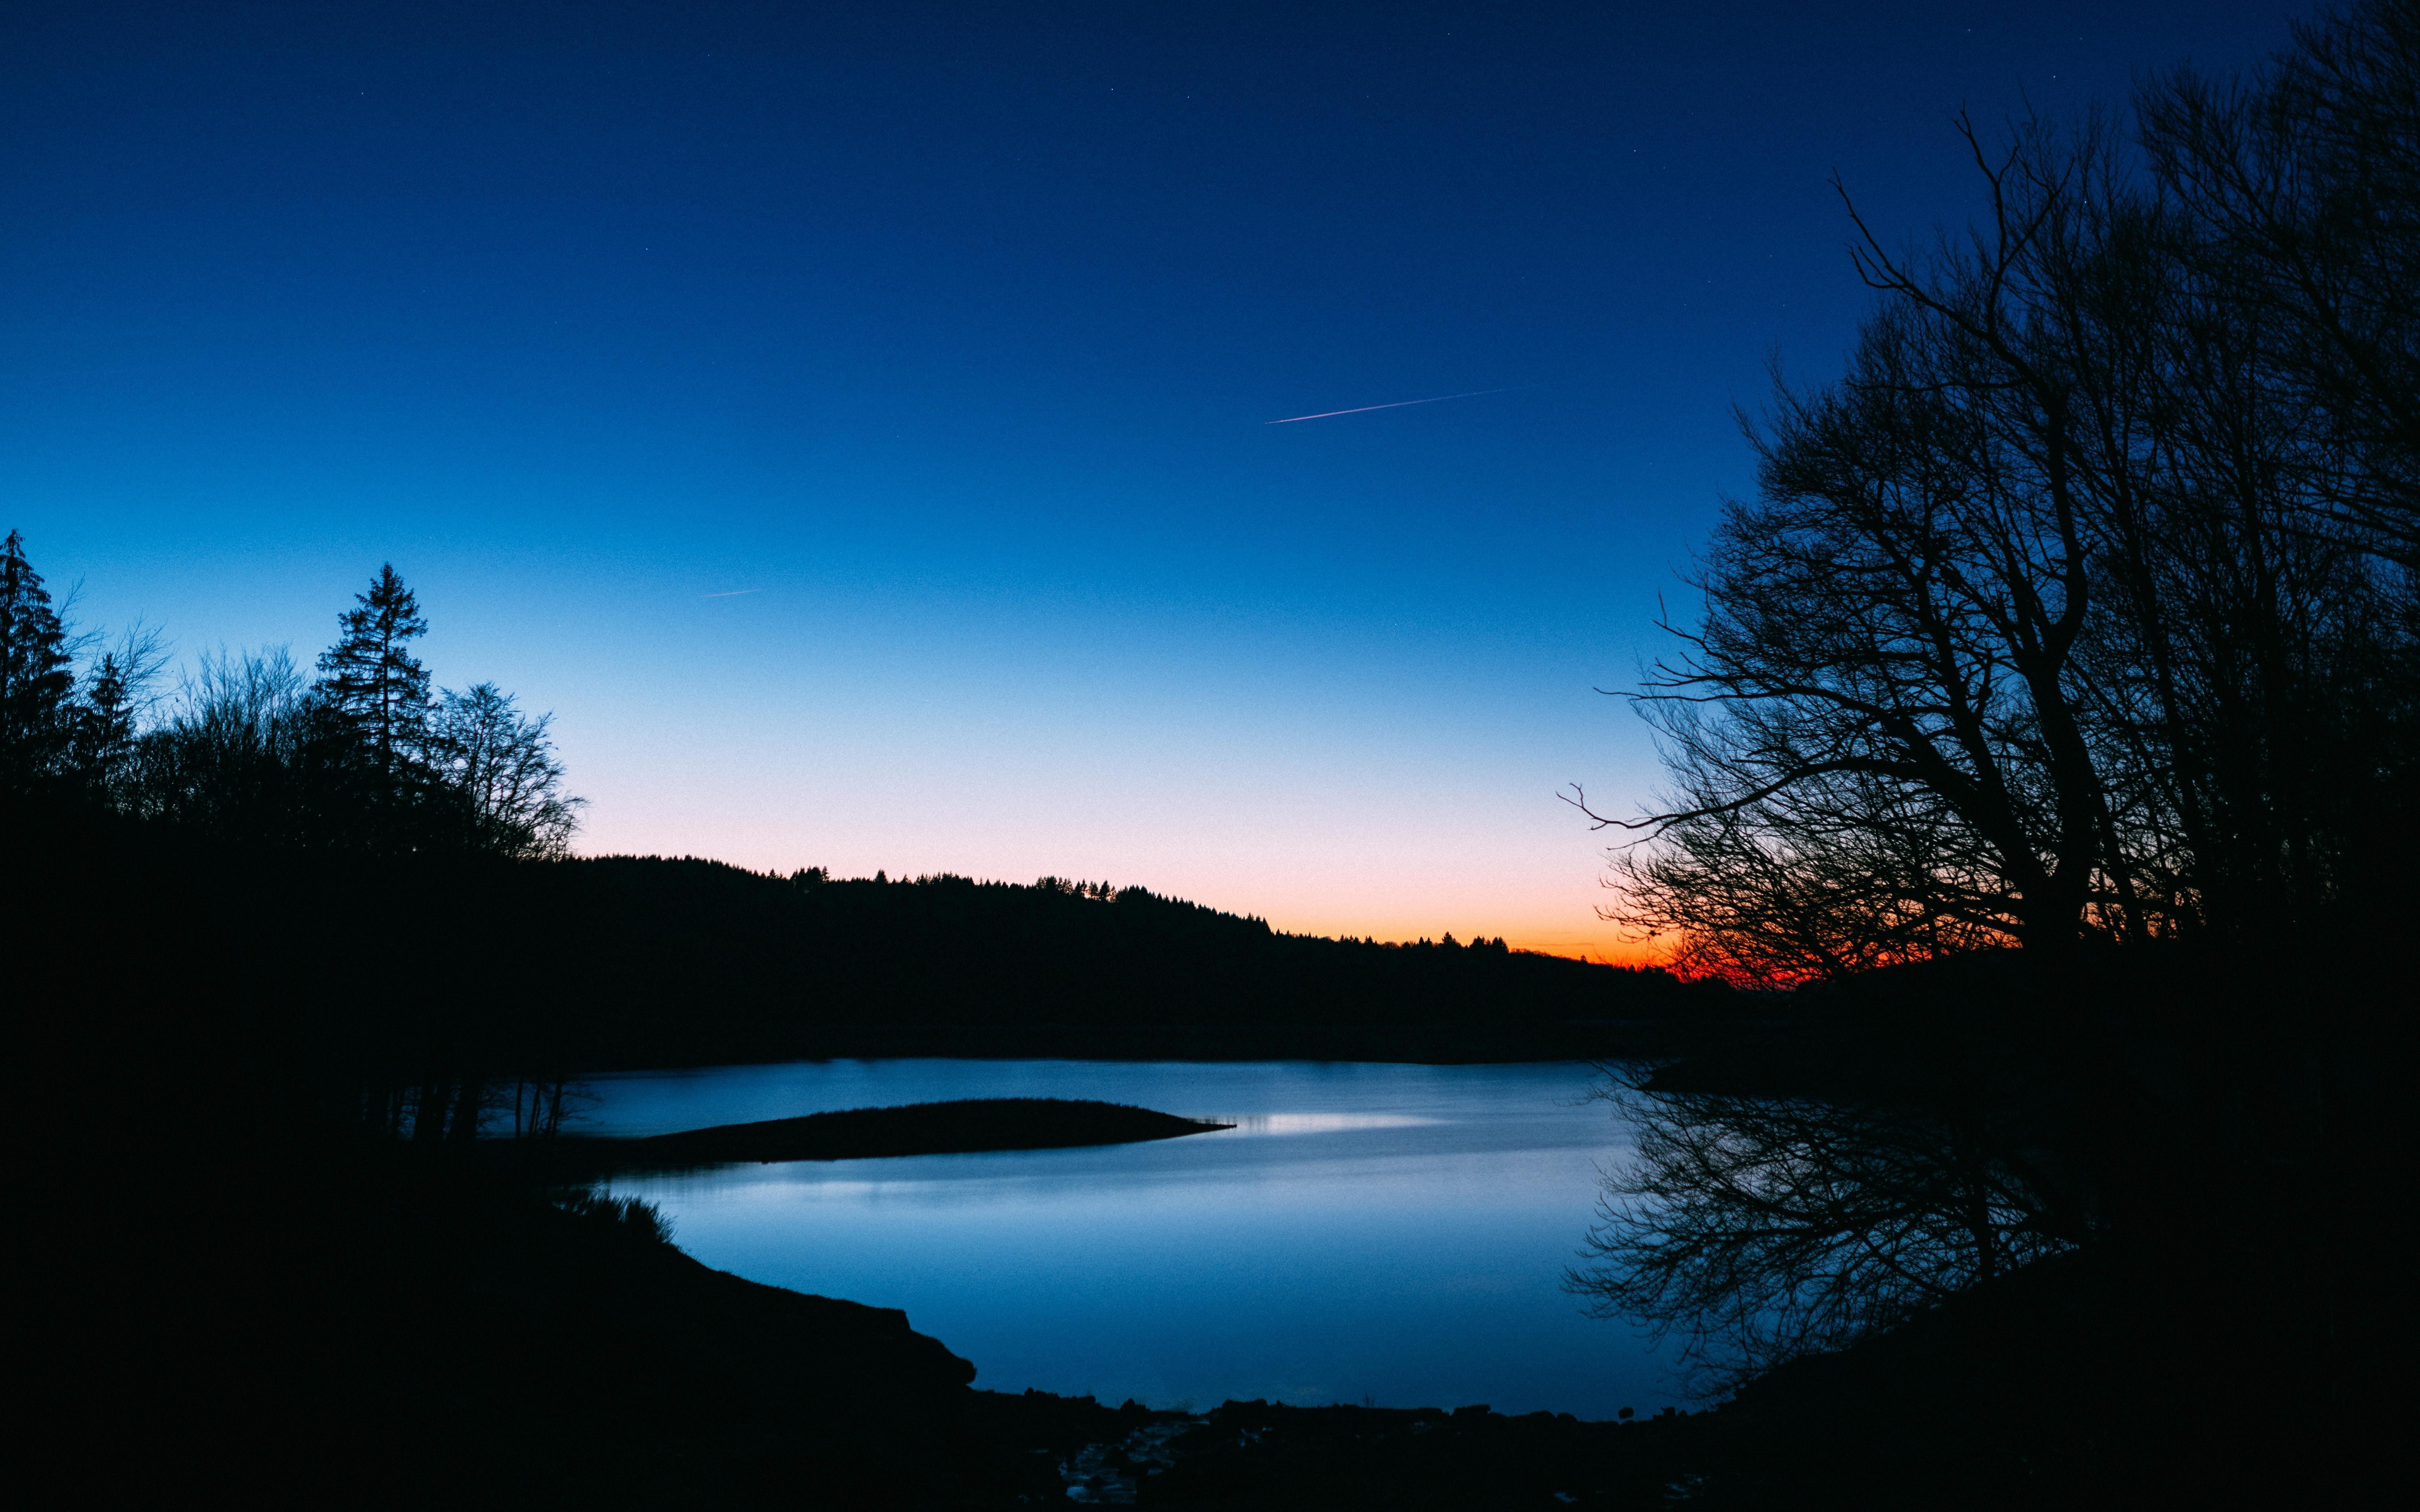 Evening Lake Wallpapers - Wallpaper Cave